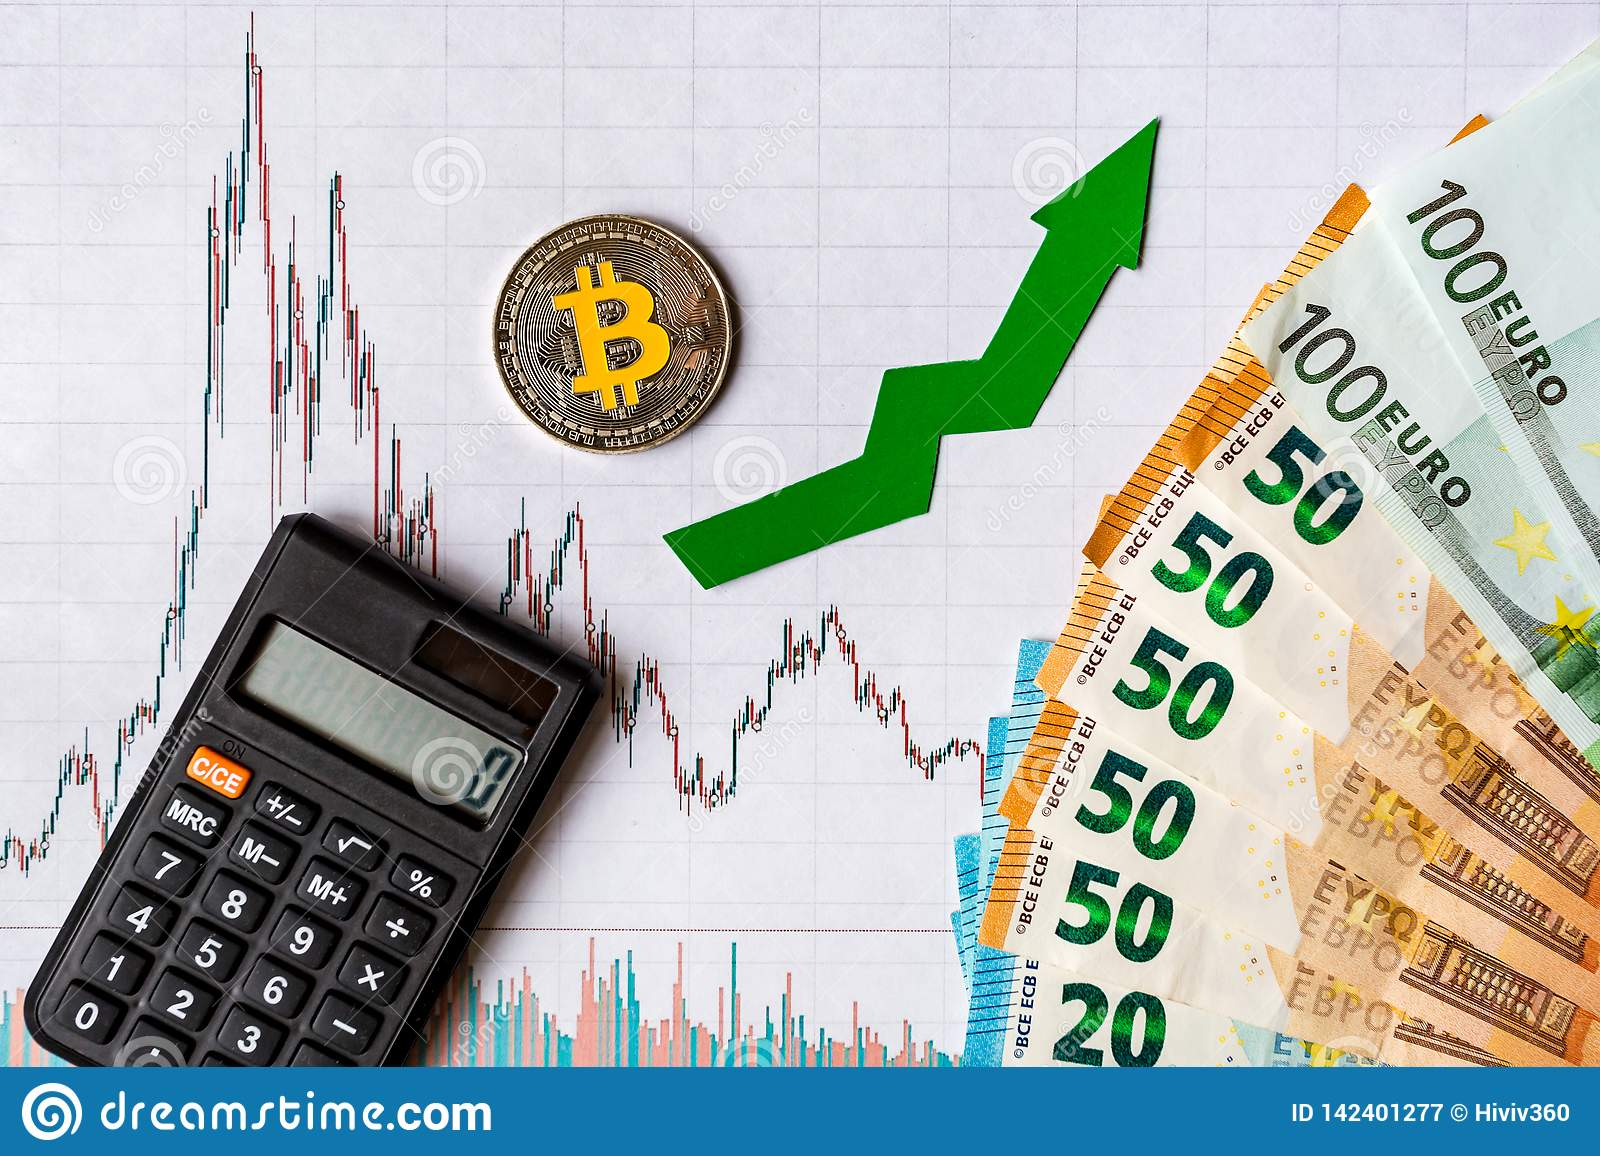 Appreciation of virtual money bitcoin. Green arrow and silver Bitcoin on paper forex chart index rating go up exchange market